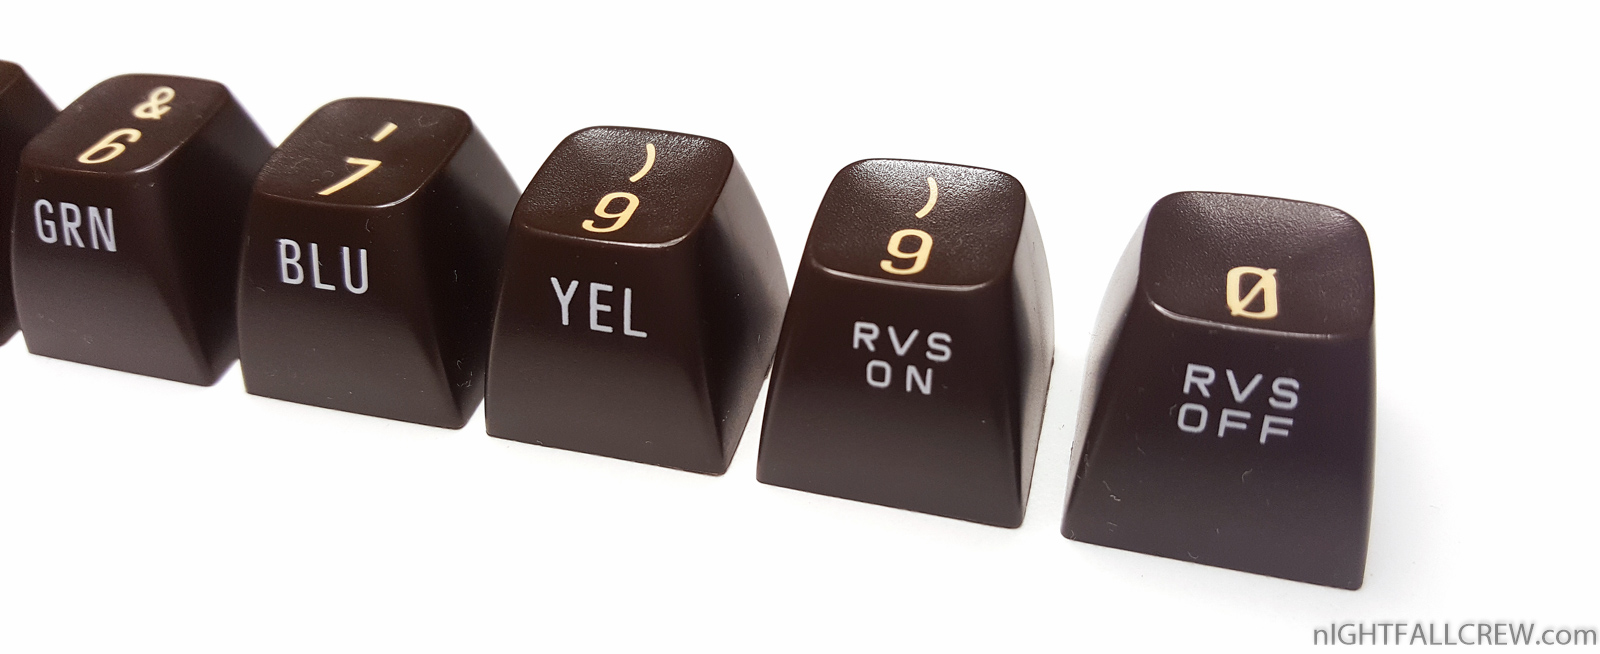 Commodore 64 with a wrong keycap | nIGHTFALL Blog